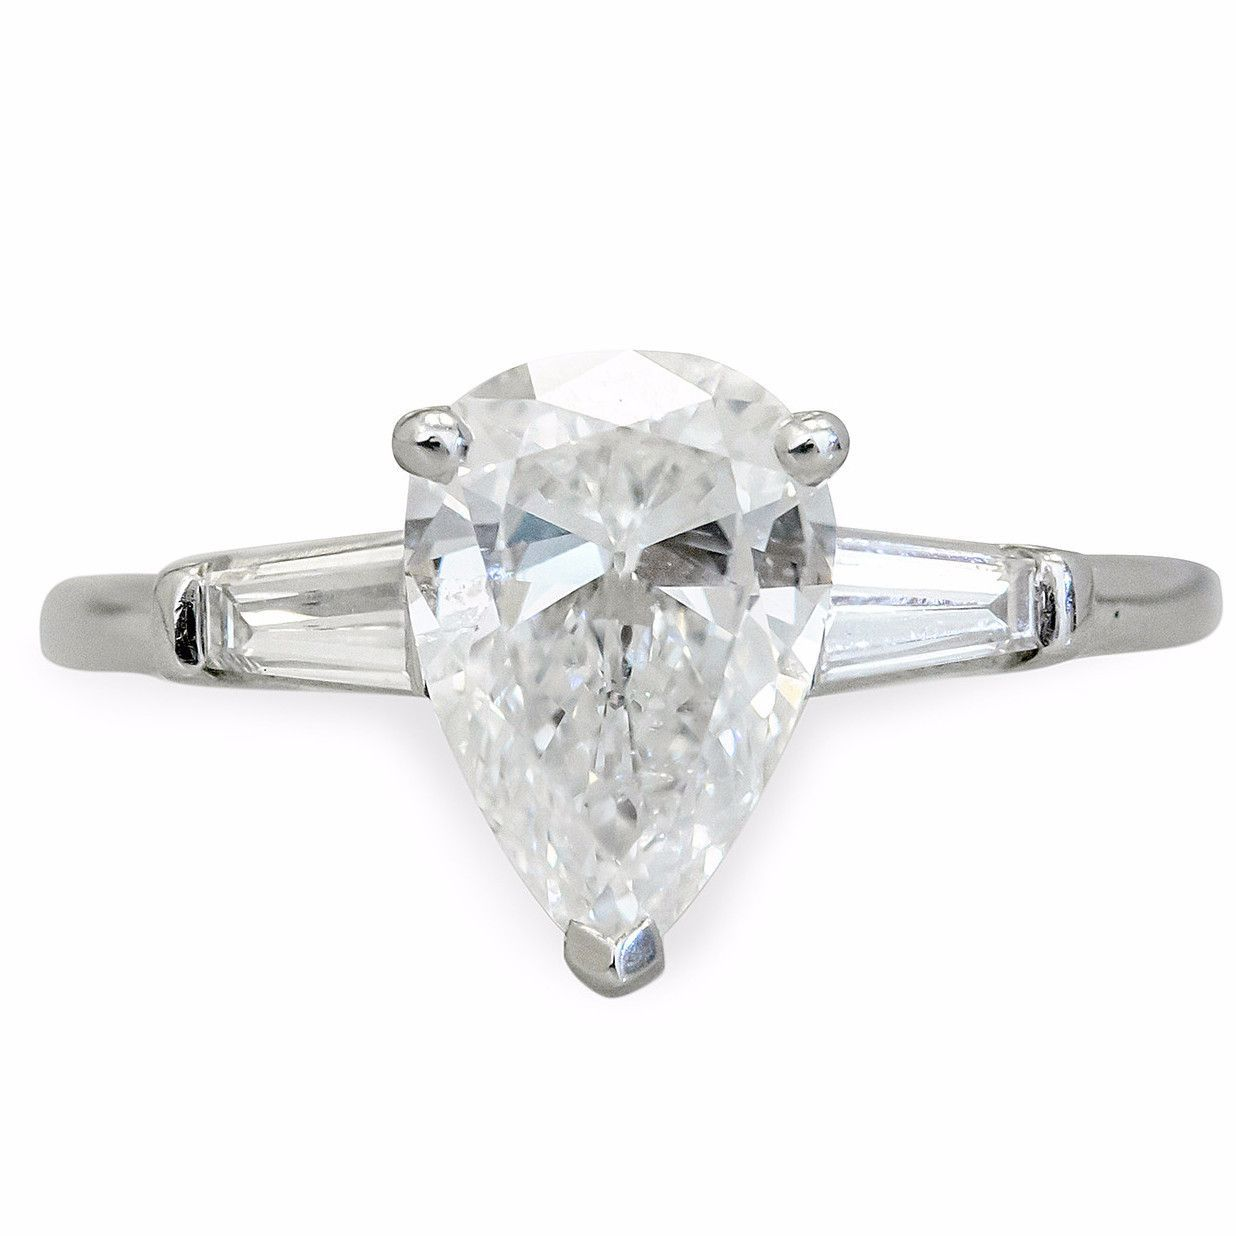 Pearshape engagement ring with baguette sides pear engagement